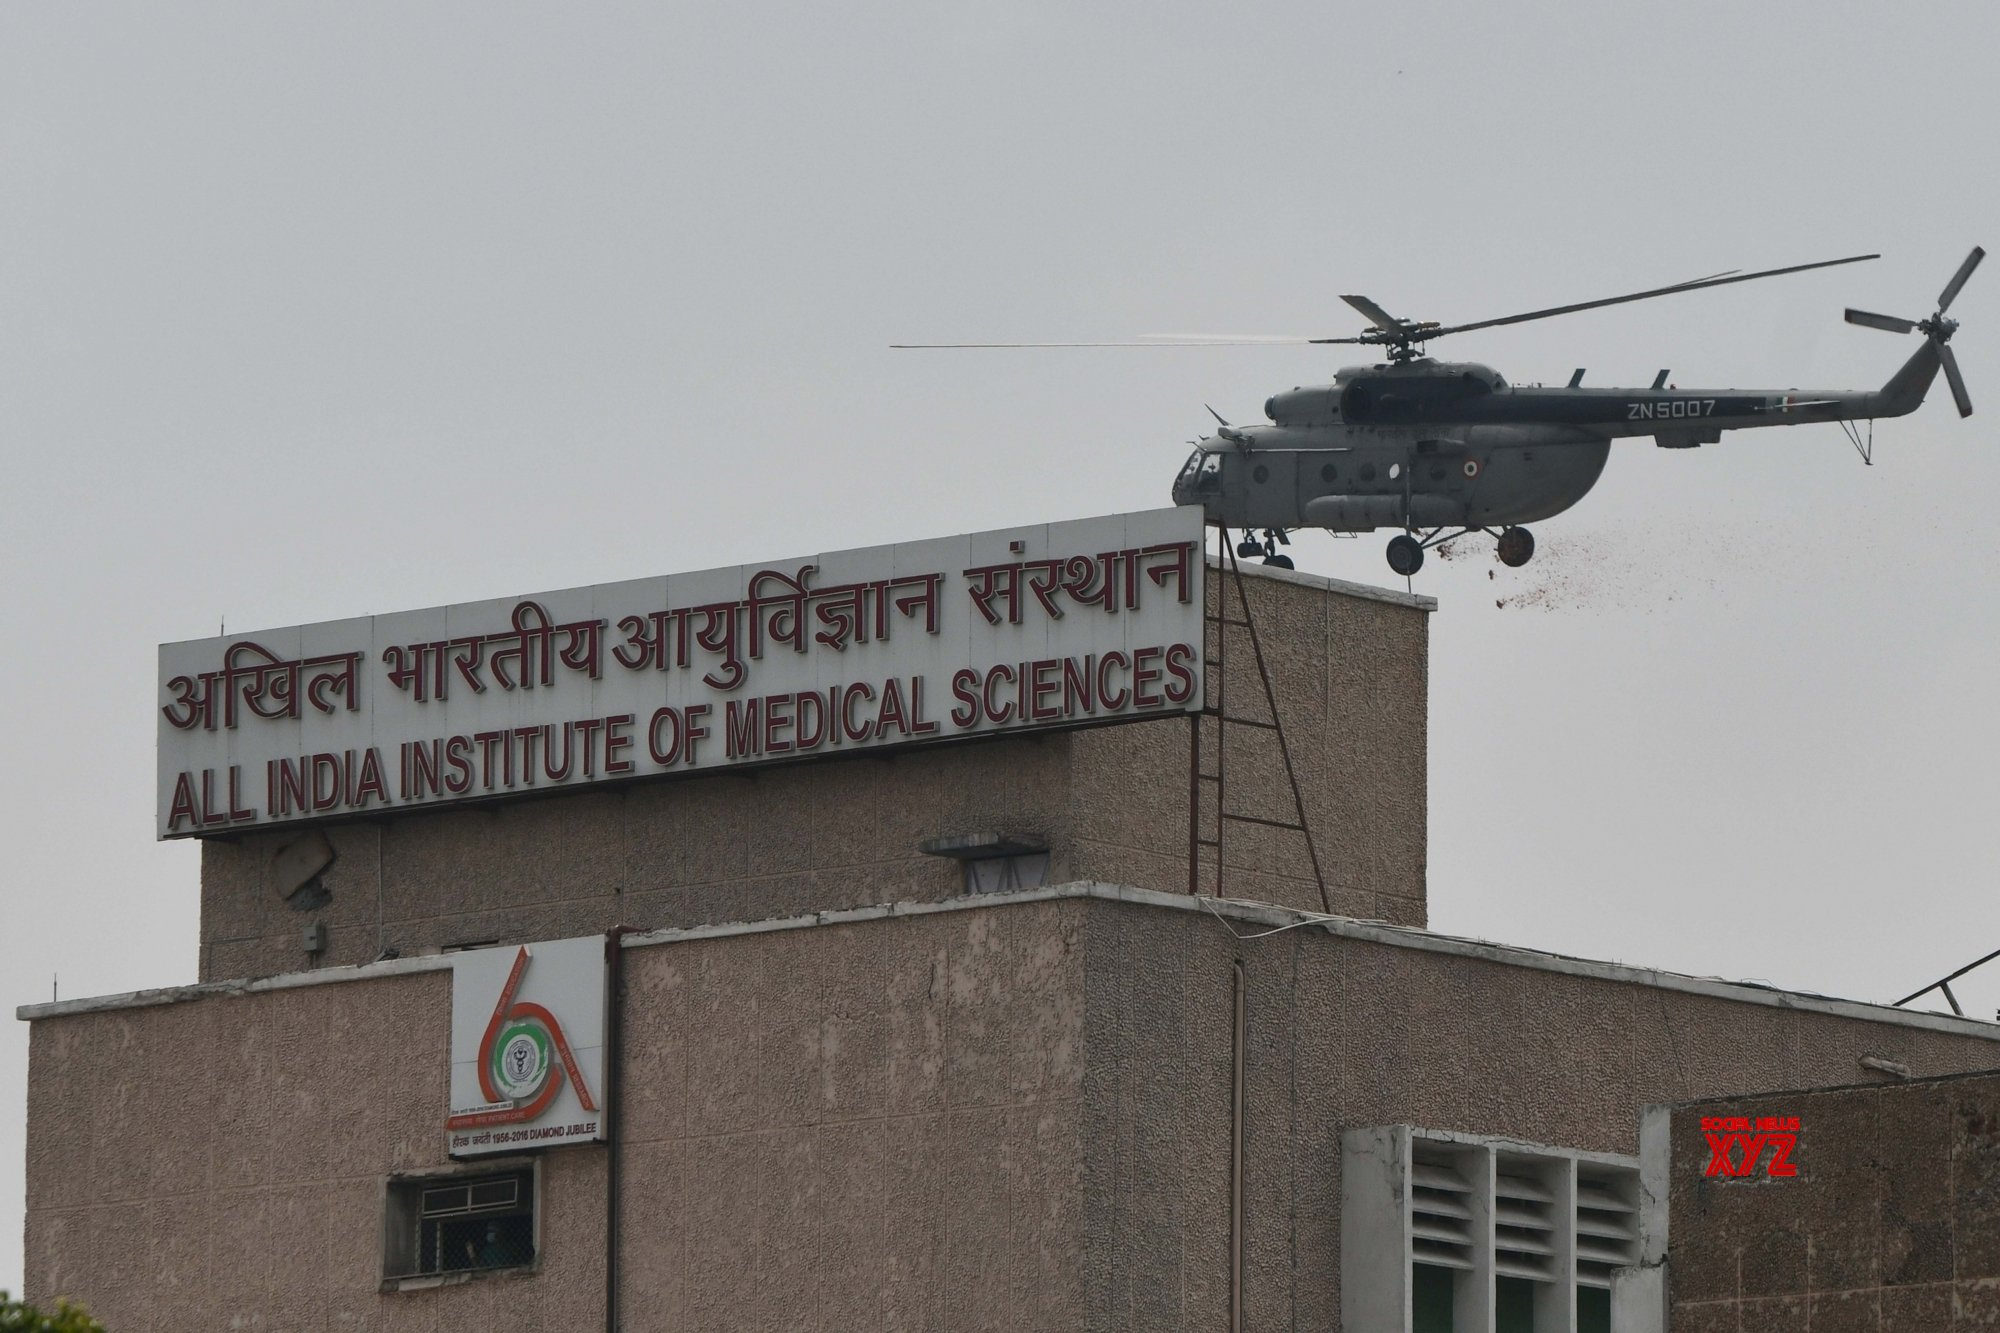 New Delhi: IAF chopper showers flower petals on AIIMS to honour Corona warriors #Gallery